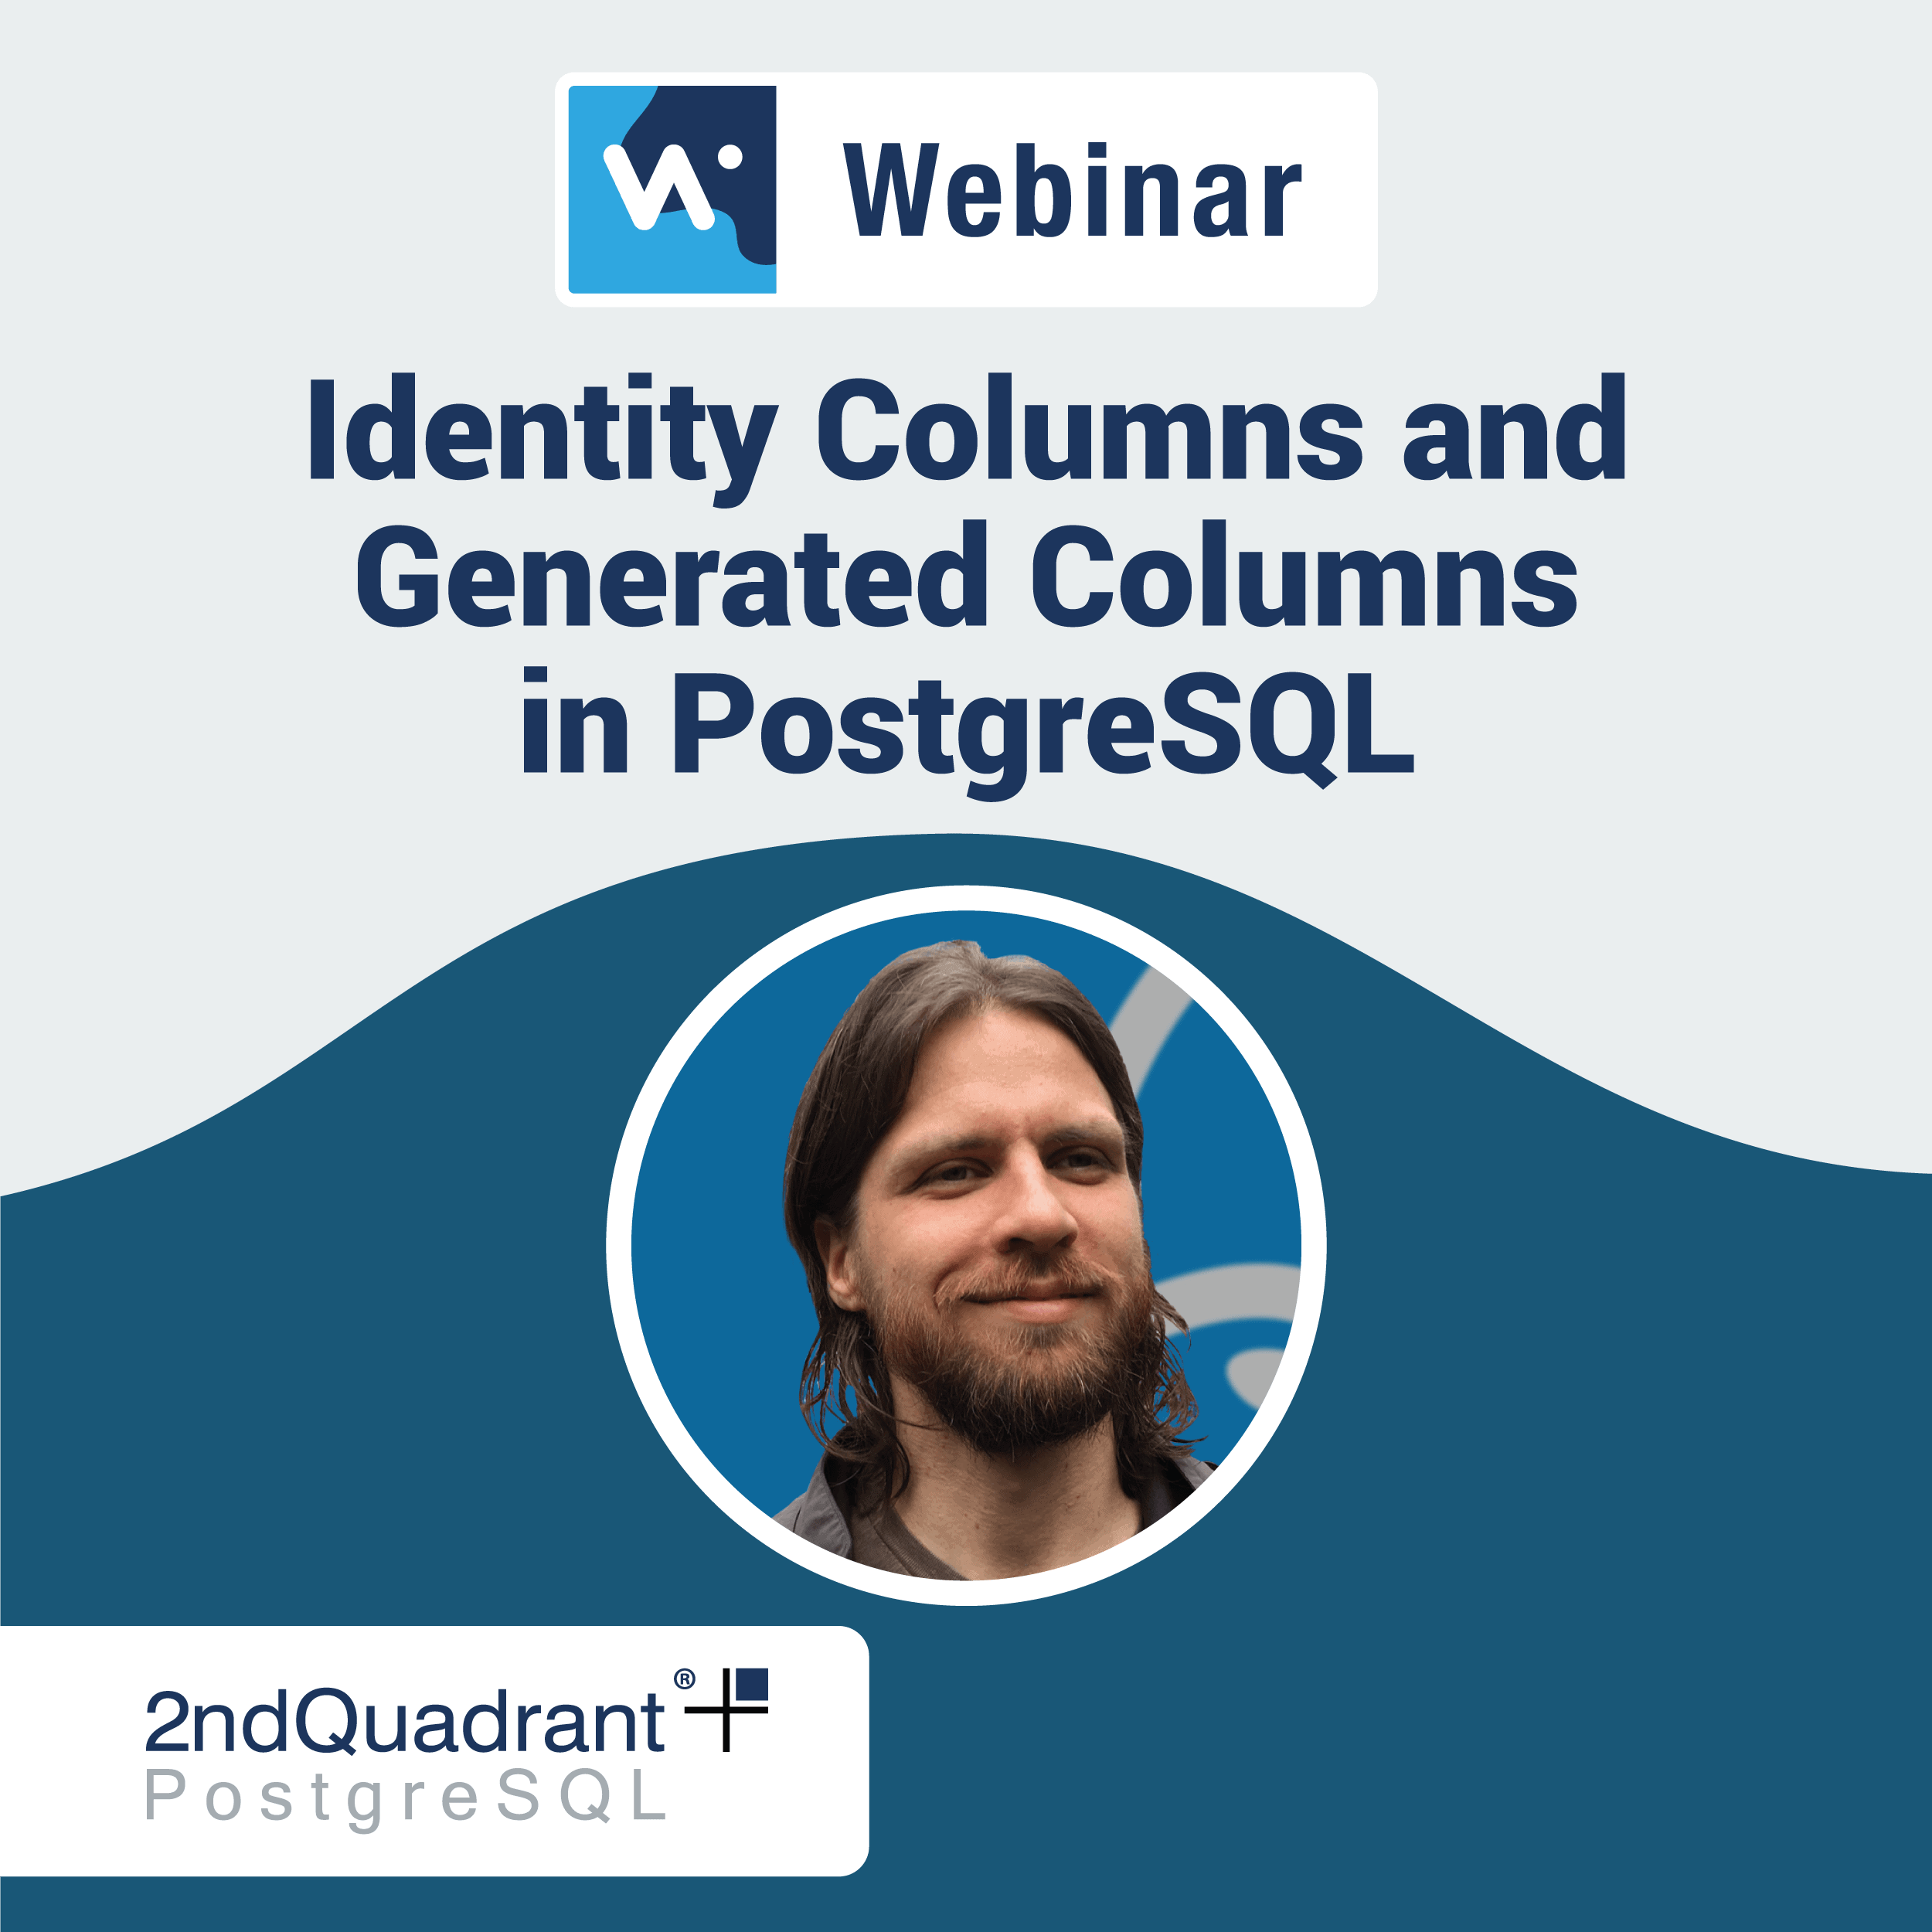 Identity Columns and Generated Columns in PostgreSQL_WebinarPage